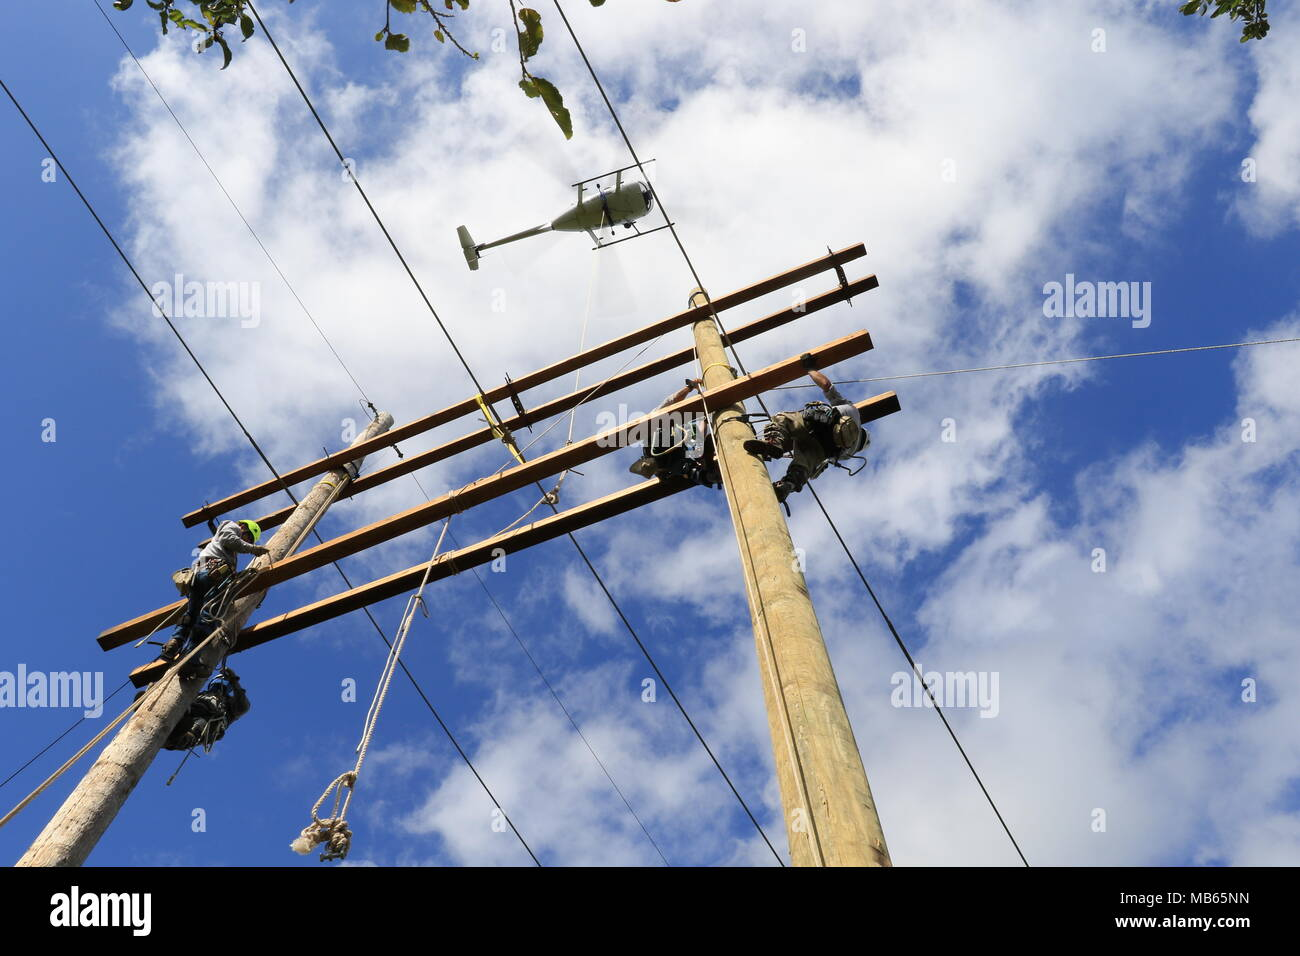 U.S. Army Corps of Engineers Task Force Power Restoration contractors complete work on a transmission line in the Guanica State Forest, Puerto Rico, April 6. The line connects the Costa Sur Power Plant in Ponce to Mayaguez. Mayaguez is the eighth-largest municipality in Puerto Rico. The repairs stabilized the system for the region. - Stock Image